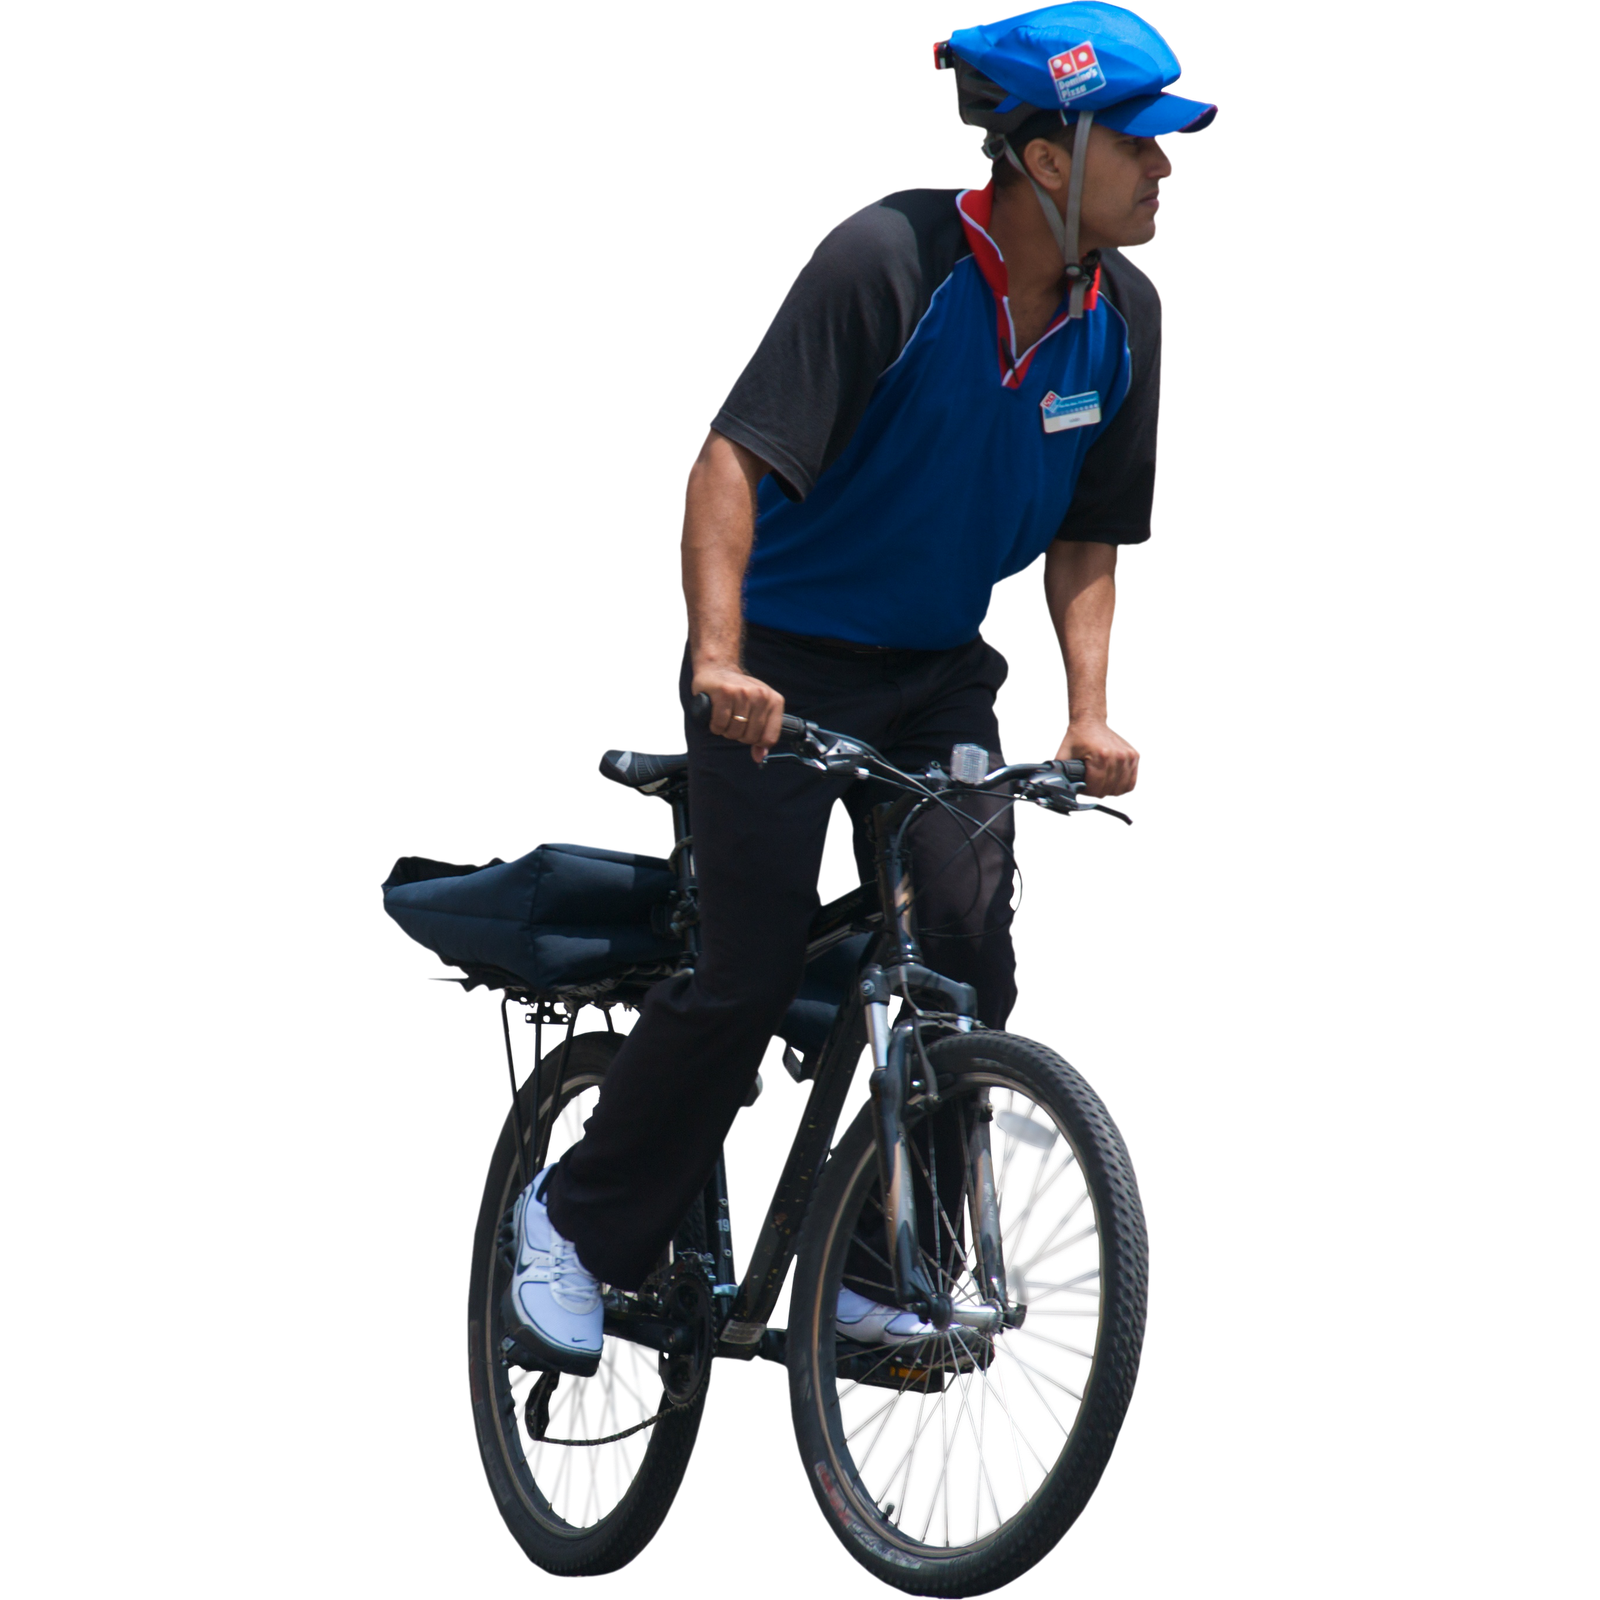 Download Bike Ride PNG Transparent Image For Designing Projects.